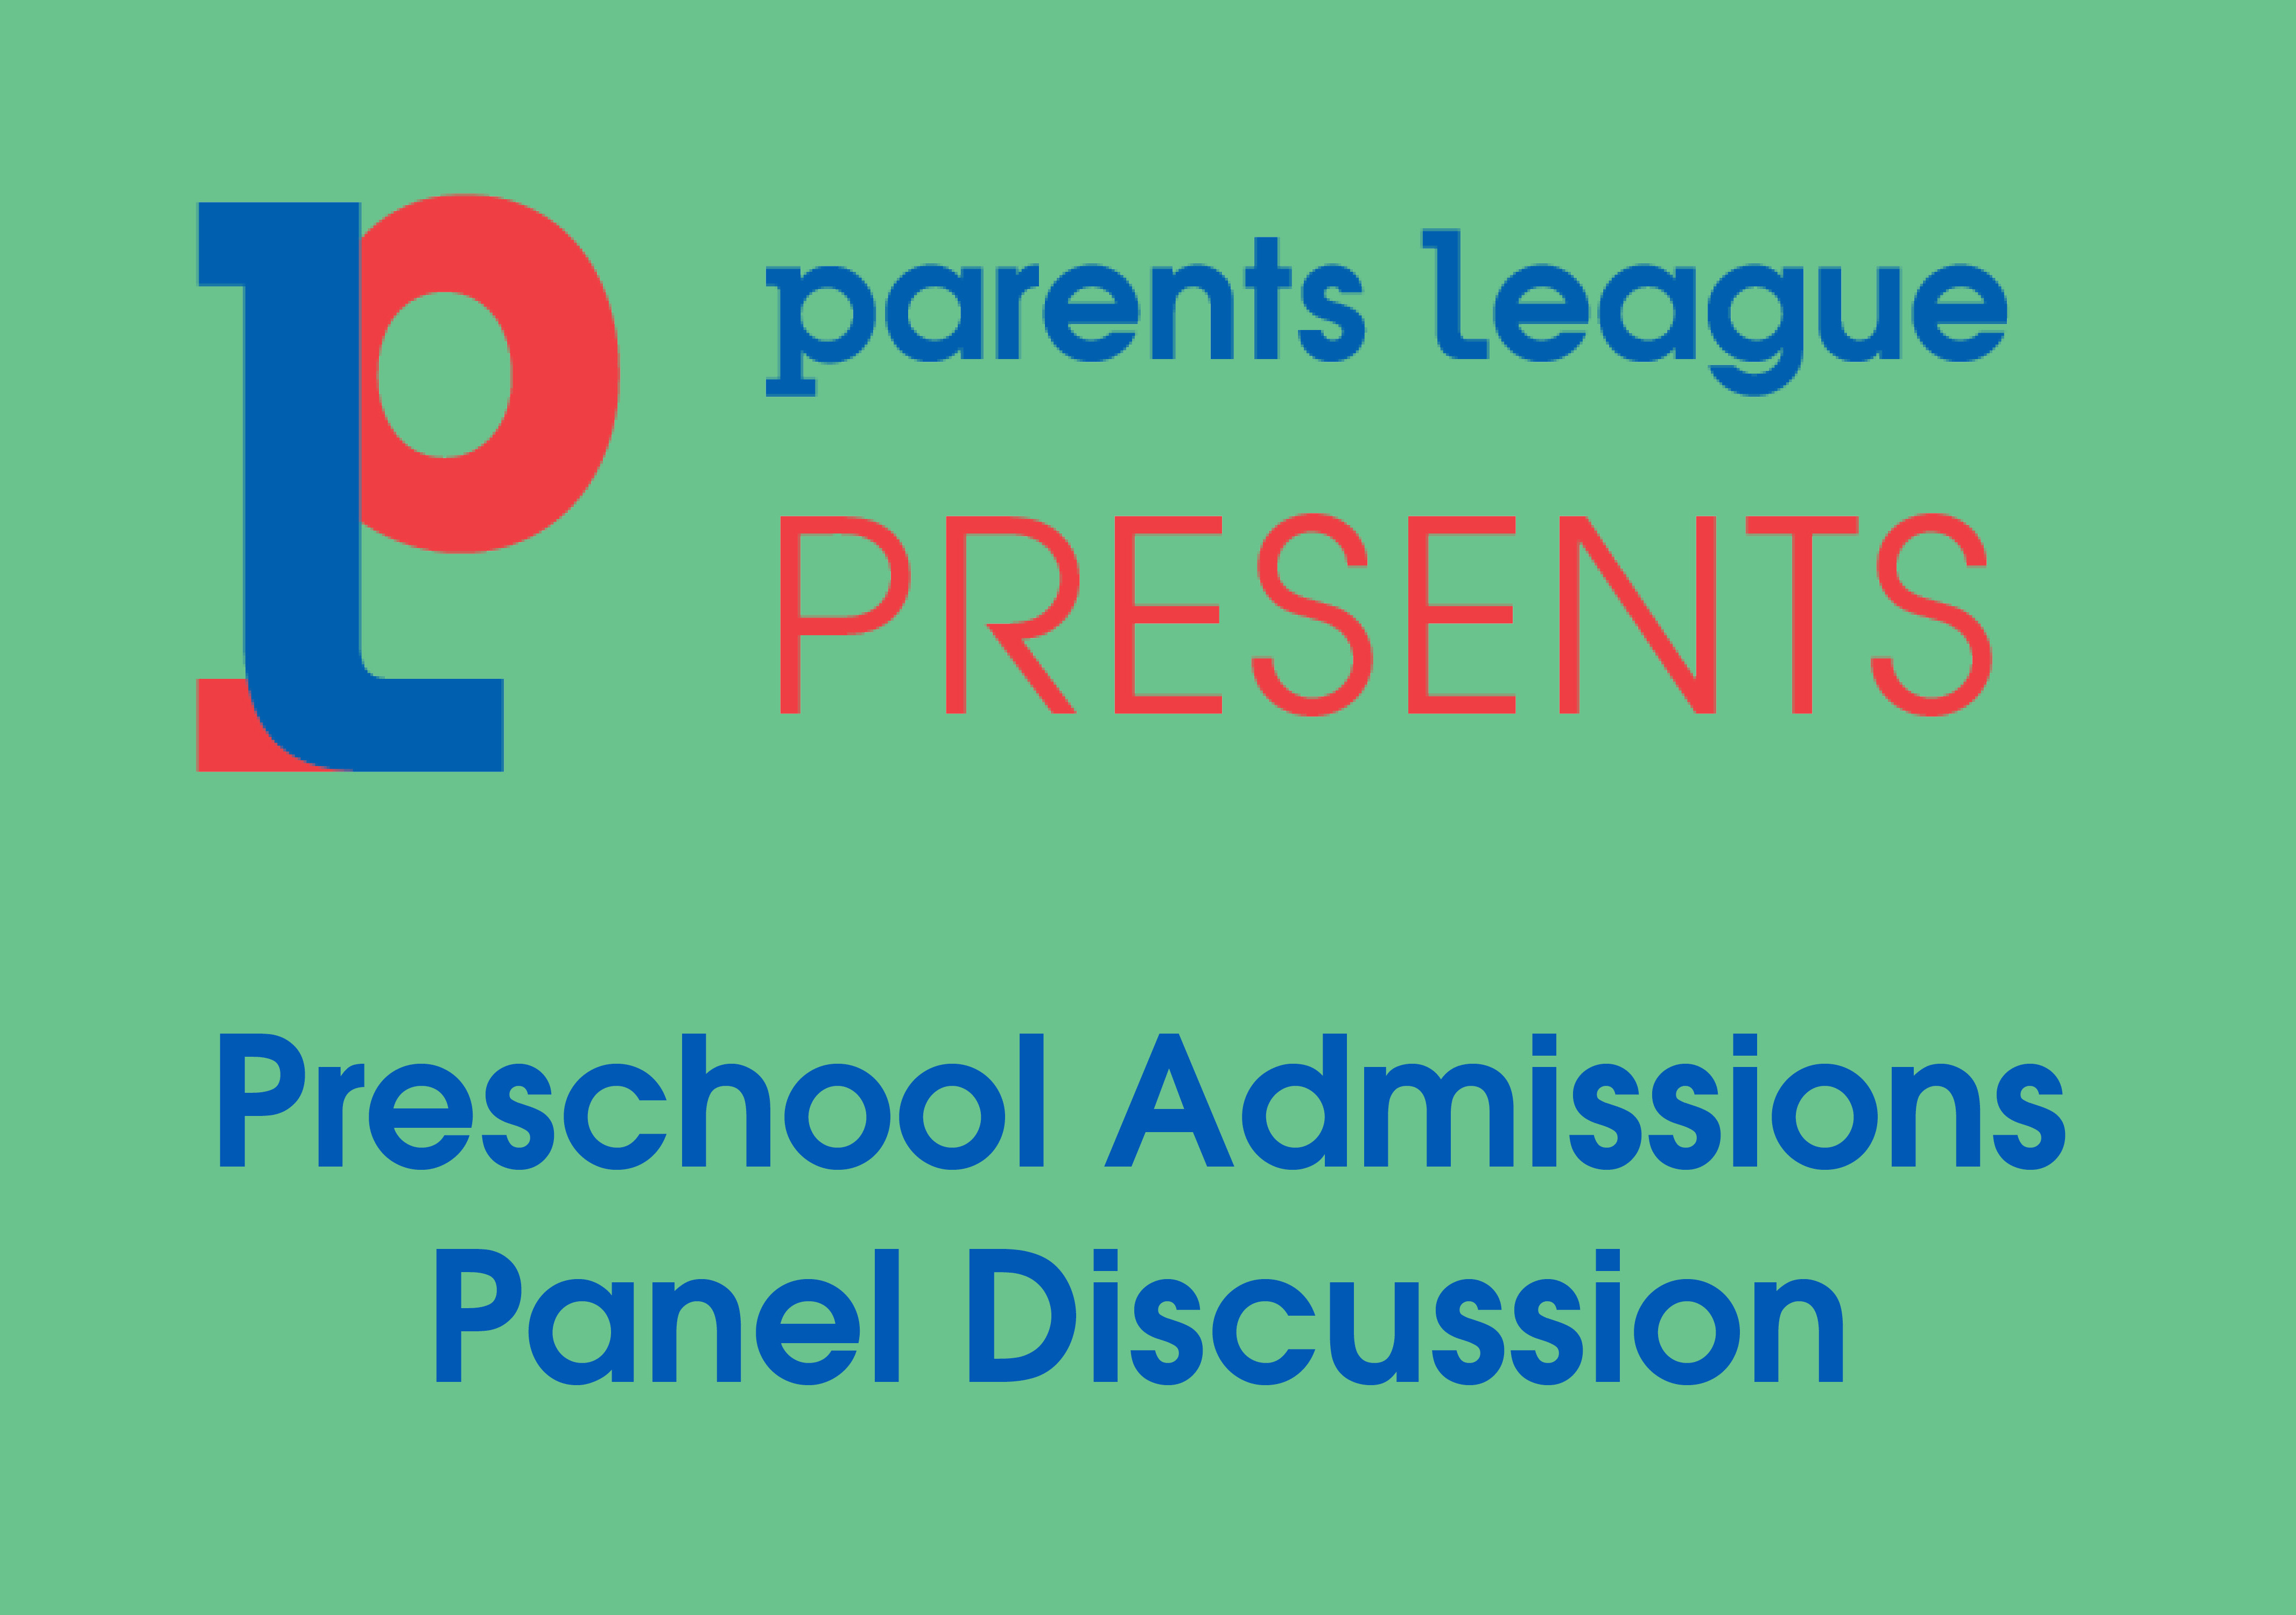 Preschool Admissions Panel Discussion